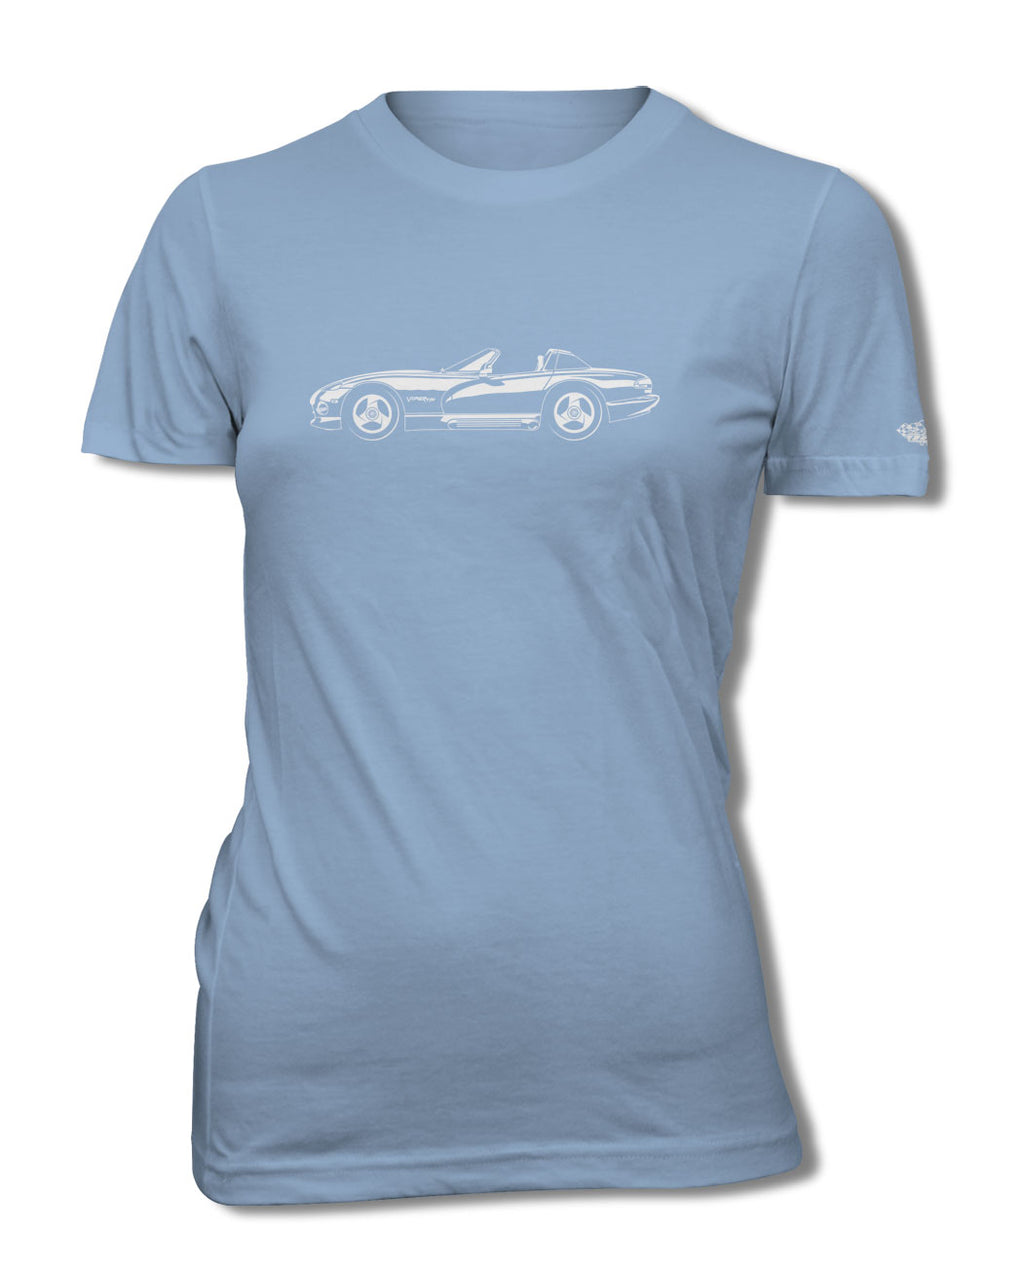 1991 - 1995 Dodge Viper SR1 T-Shirt - Women - Side View